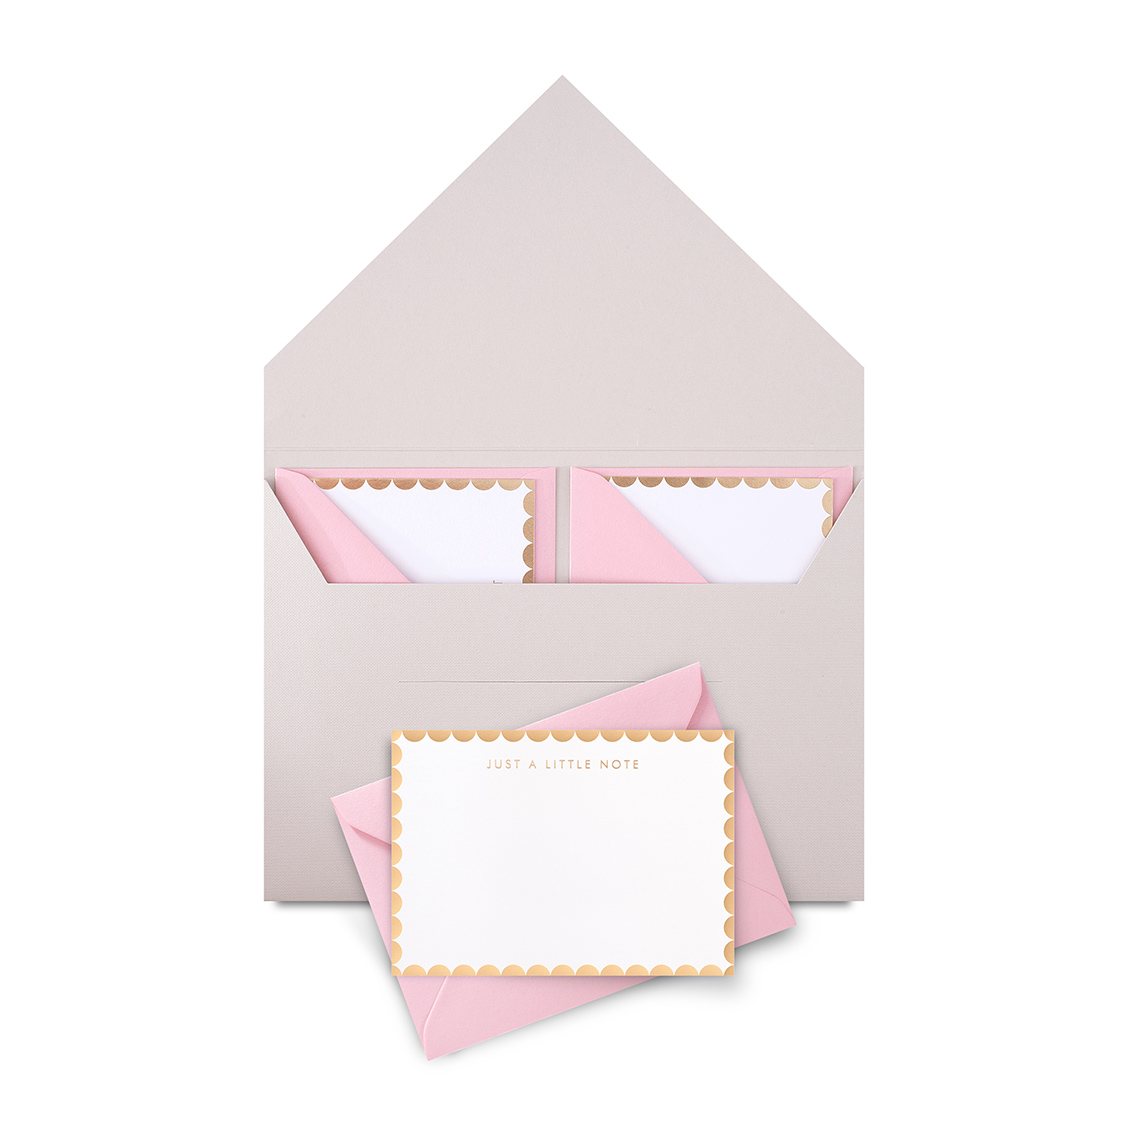 'Just a Little Note' Notelet by Studio Sarah